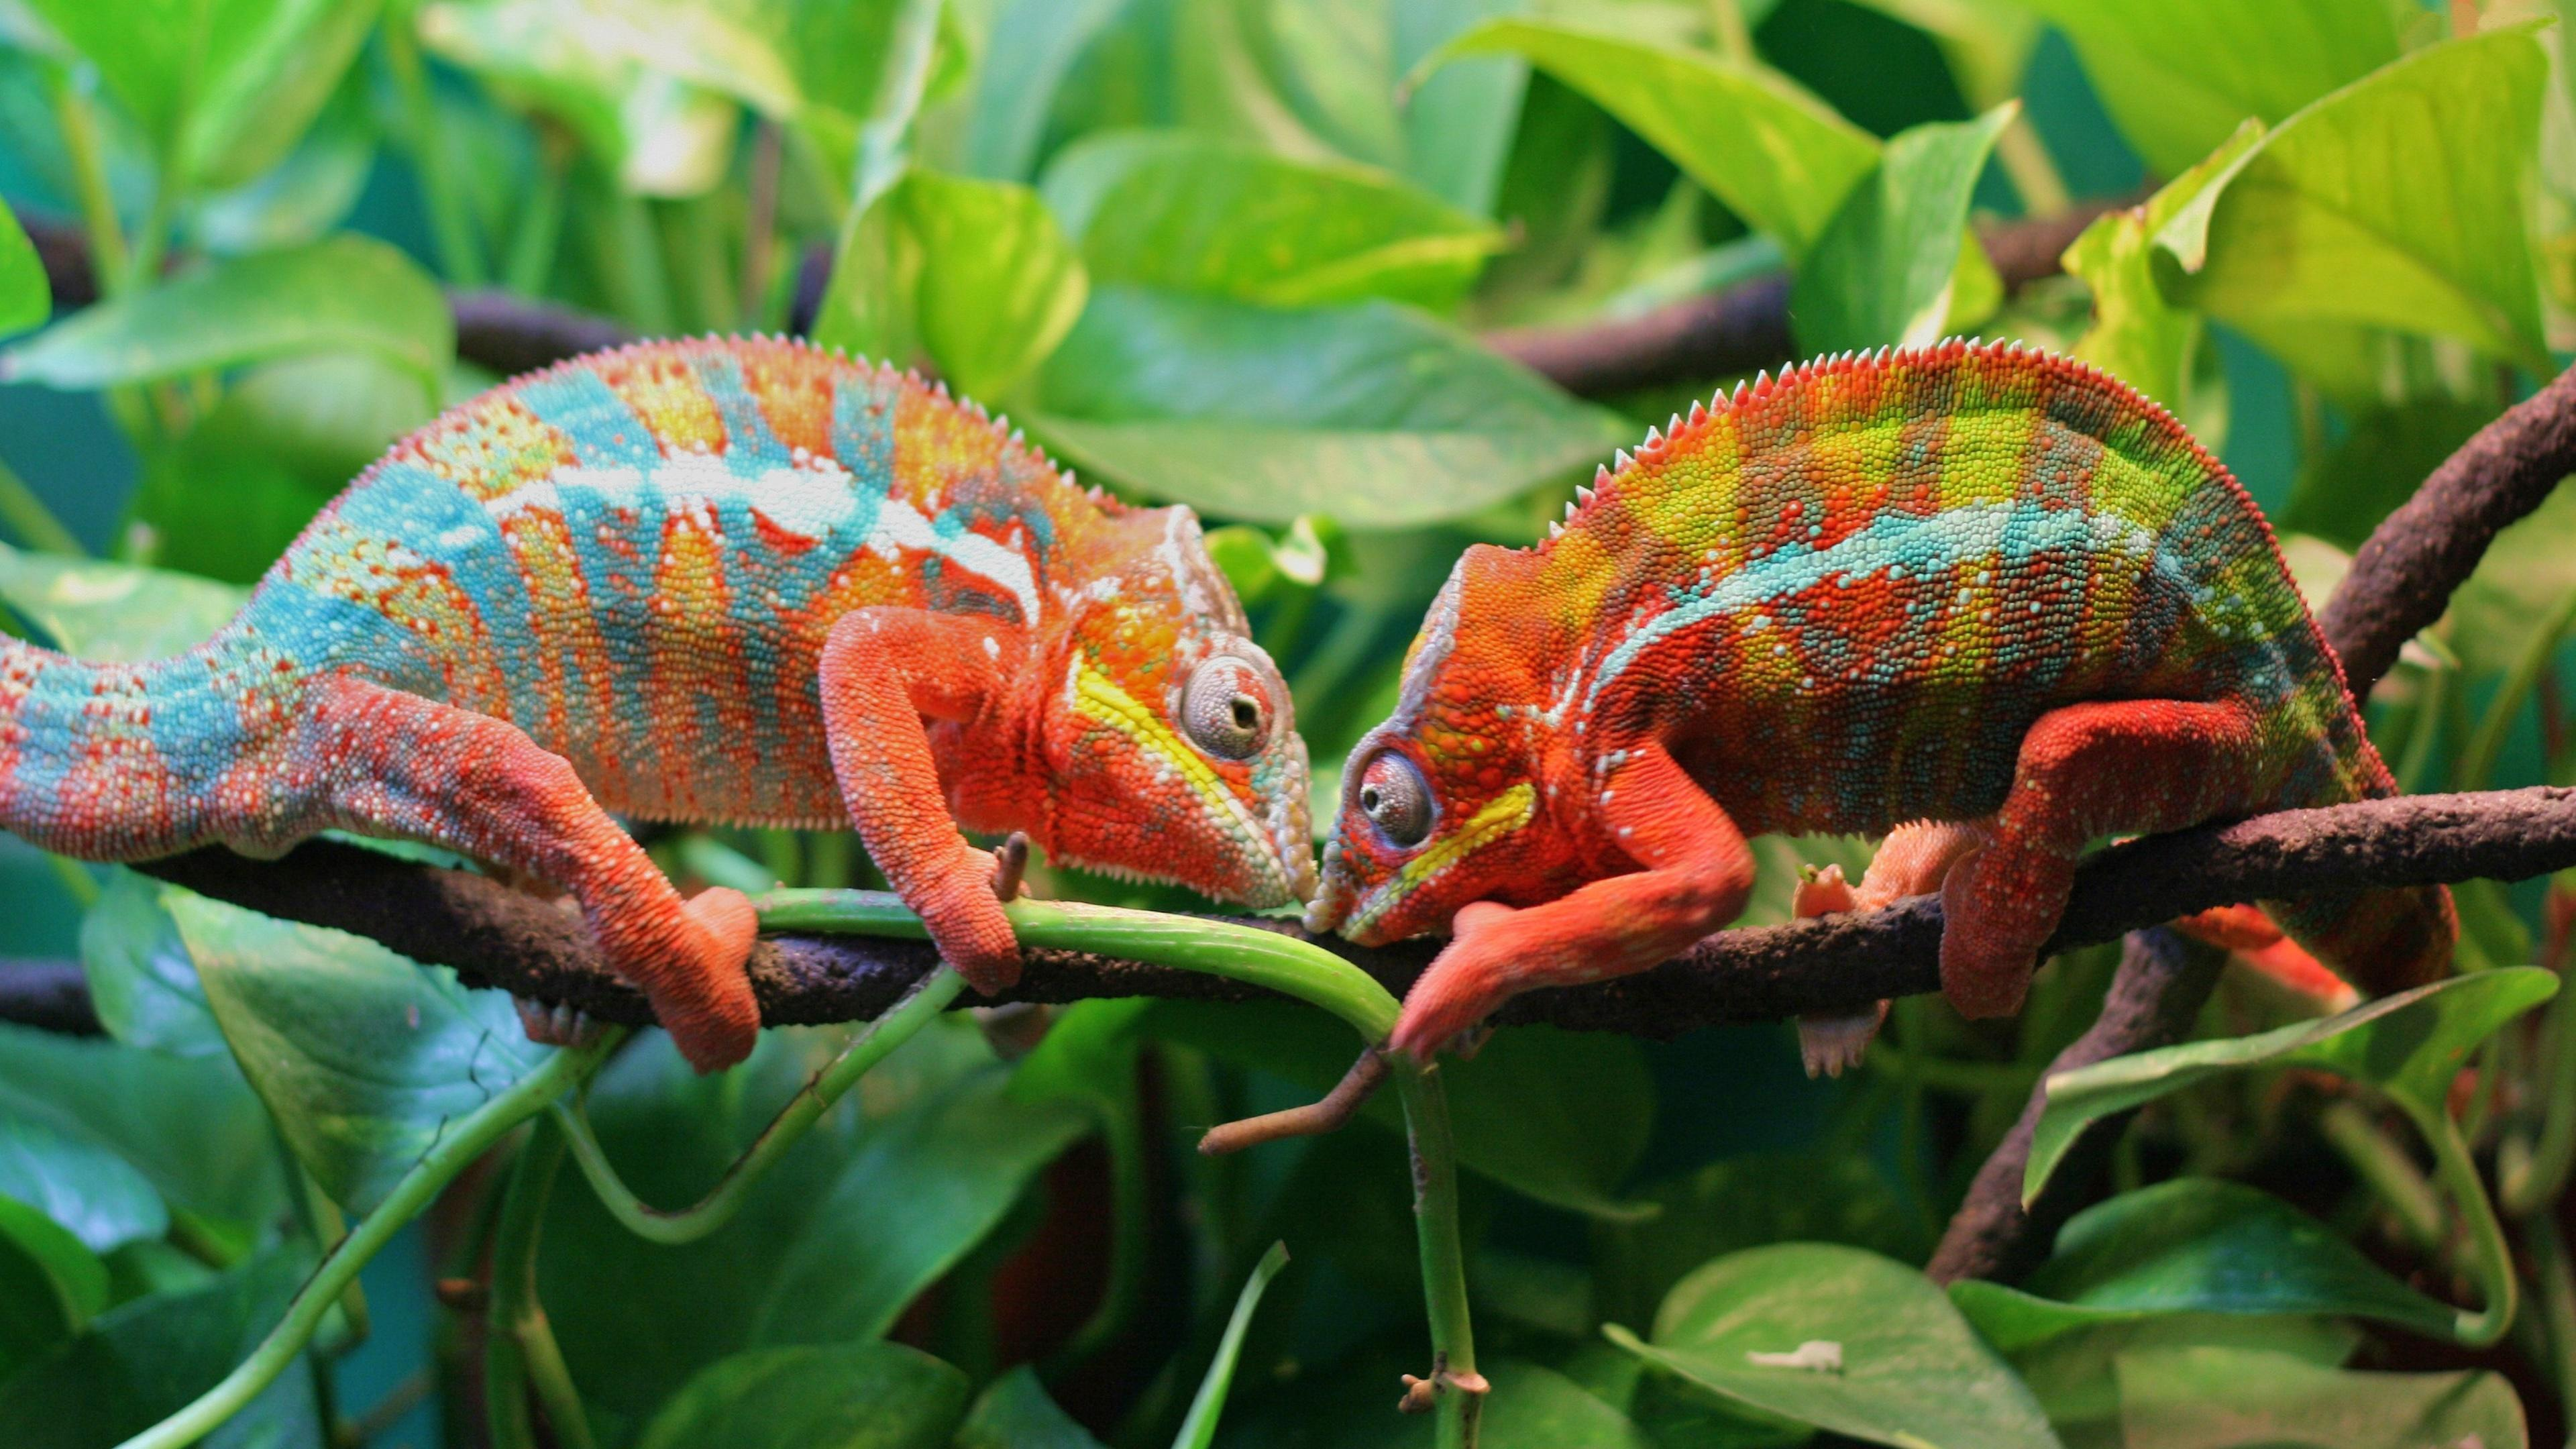 Two Chameleons On A Tree 4K UltraHD Wallpapers